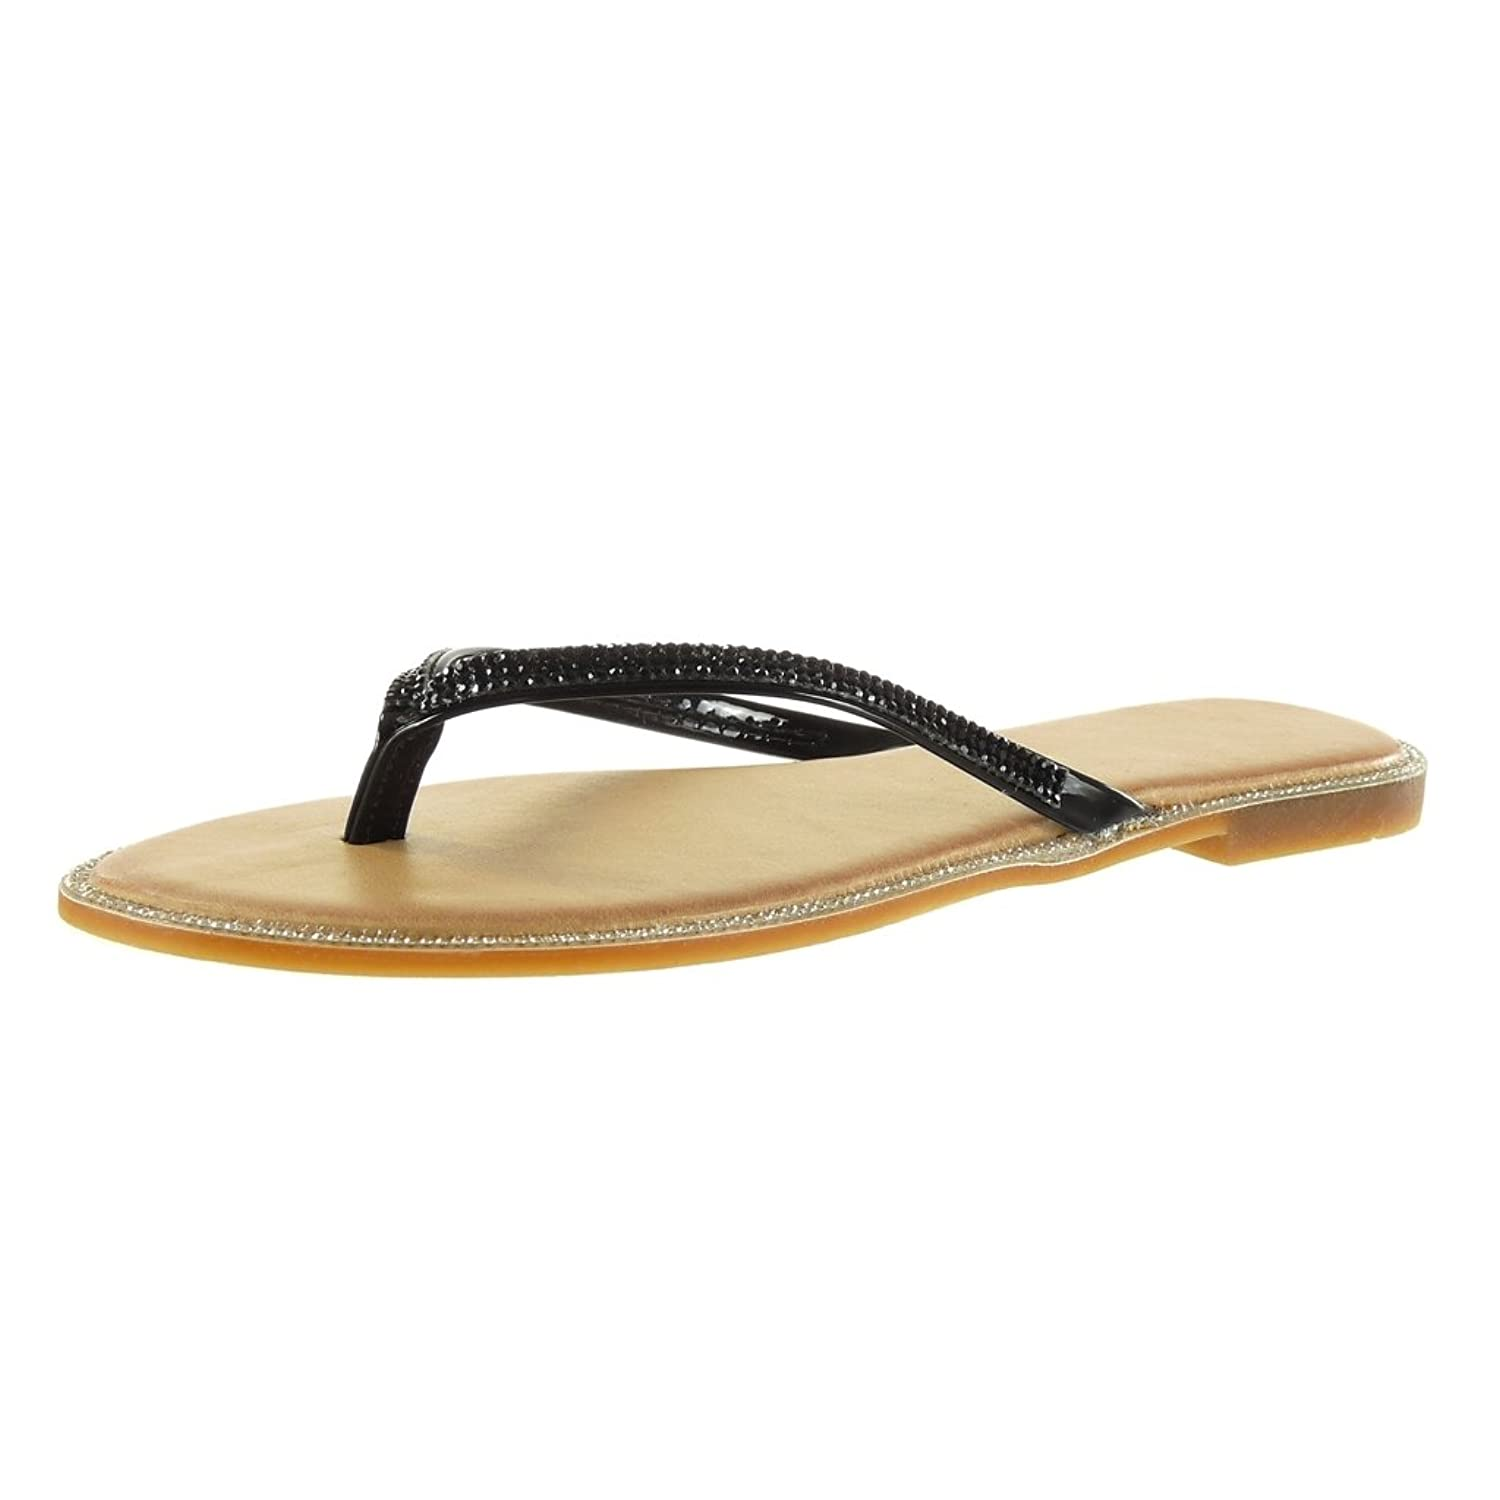 durable service Angkorly Chaussure Mode Sandale Tong femme